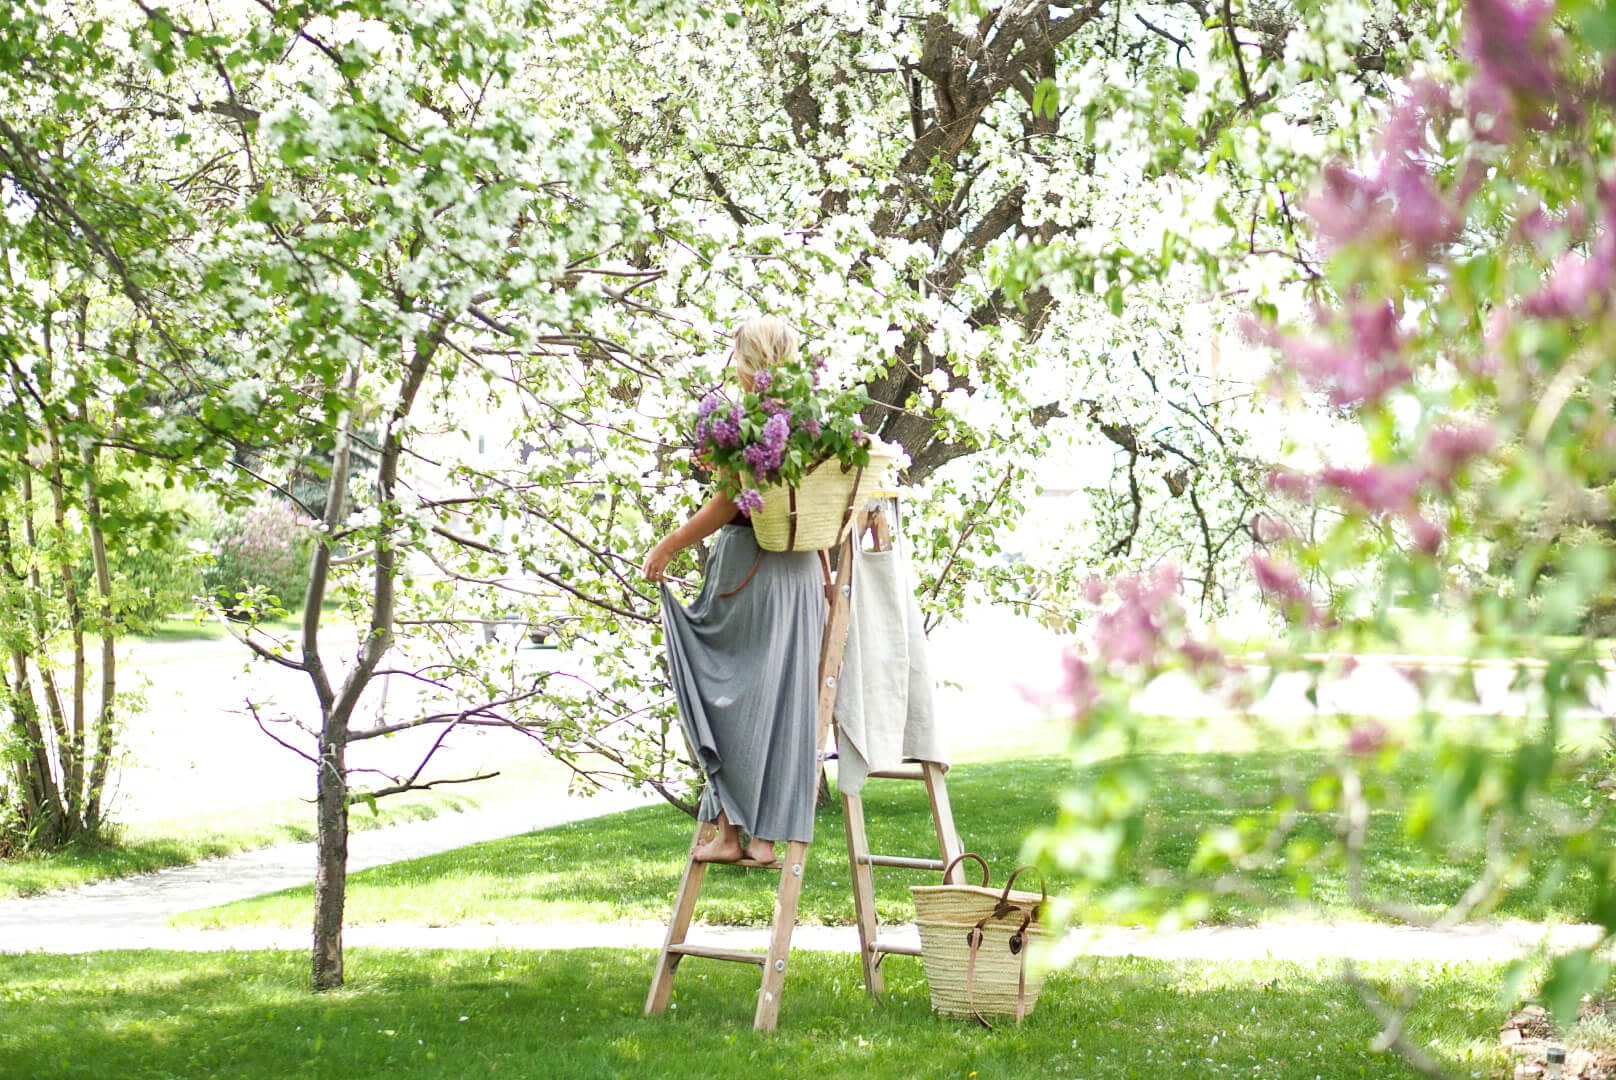 Girl on a ladder in blooming trees photo shoot